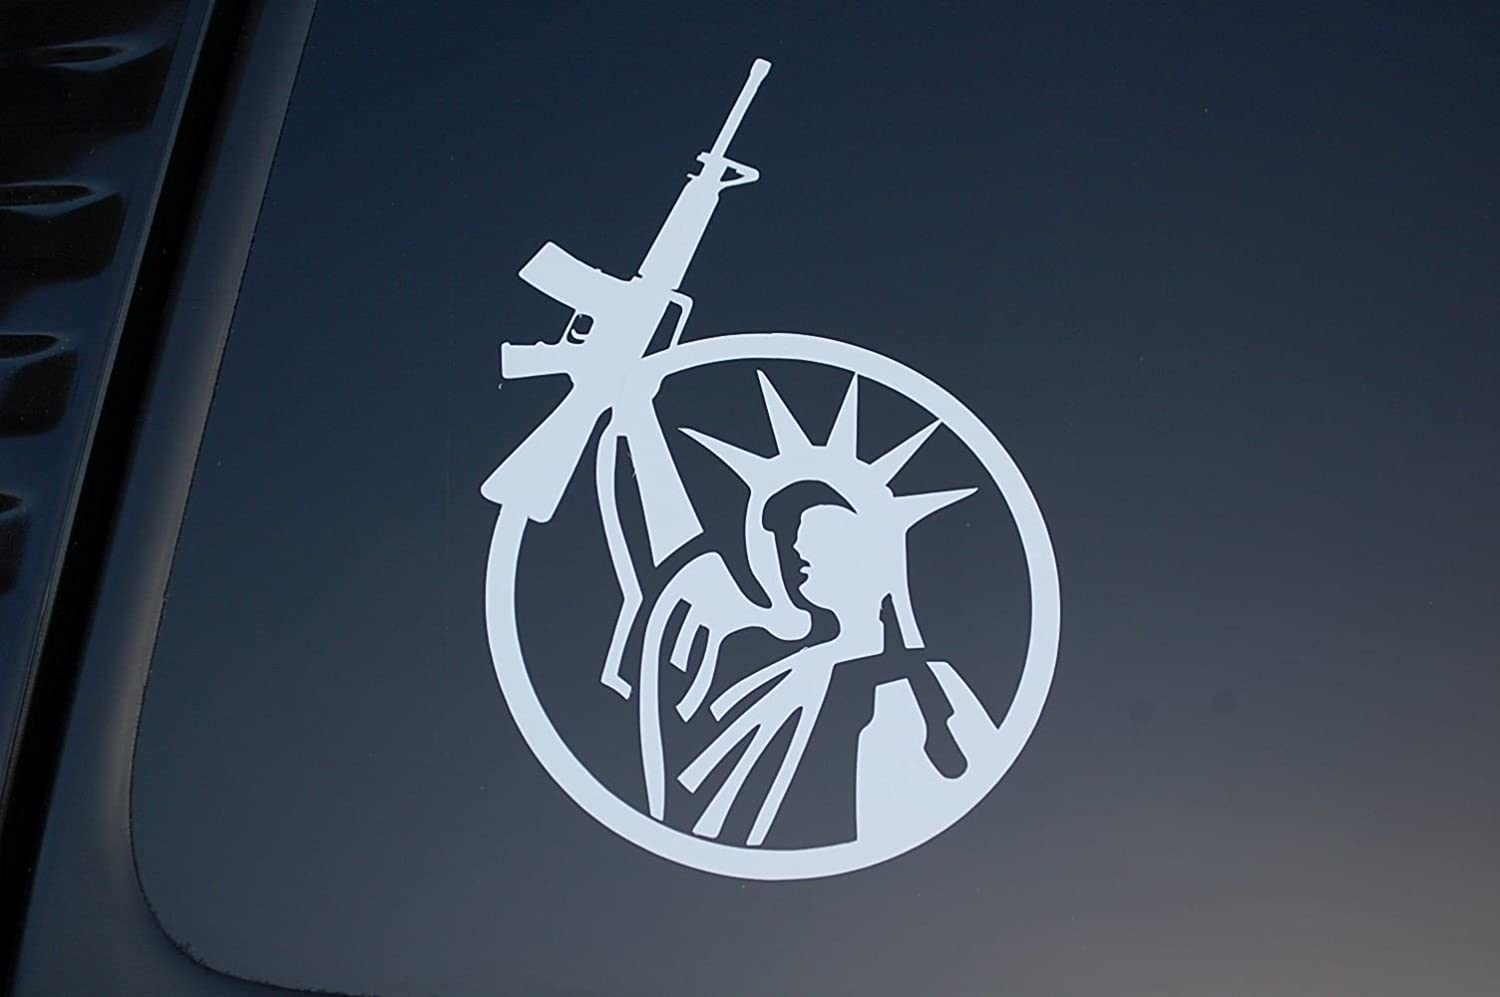 3 x LADY LIBERTY GUN Decal Sticker Rights 2nd Amendment NRA AR15 Molon Labe